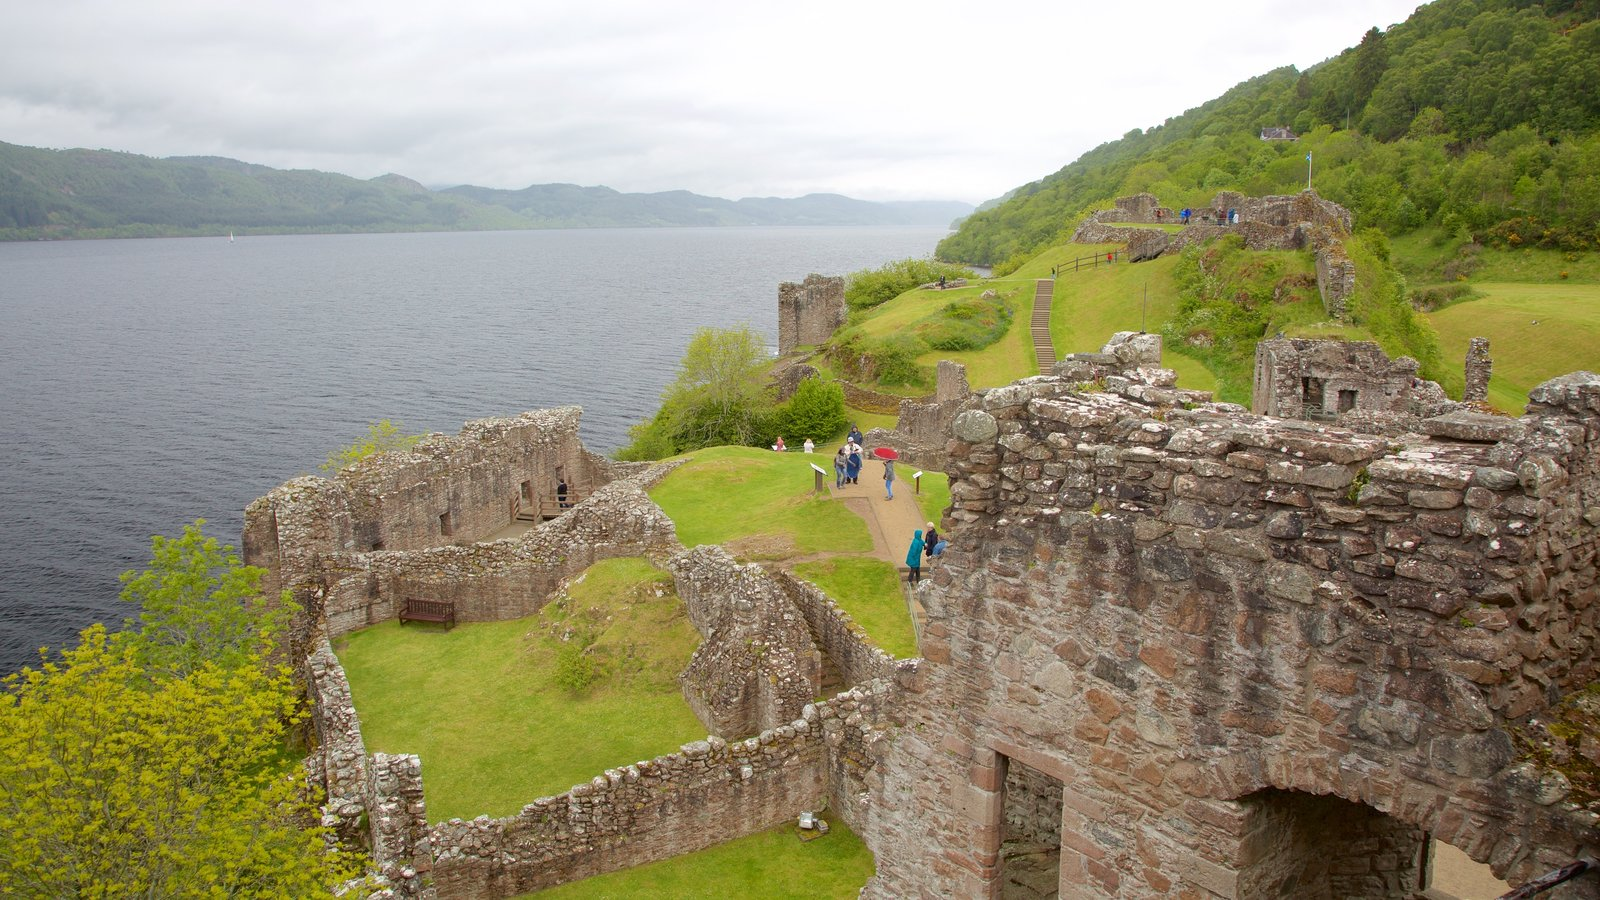 Urquhart Castle which includes chateau or palace, heritage elements and building ruins